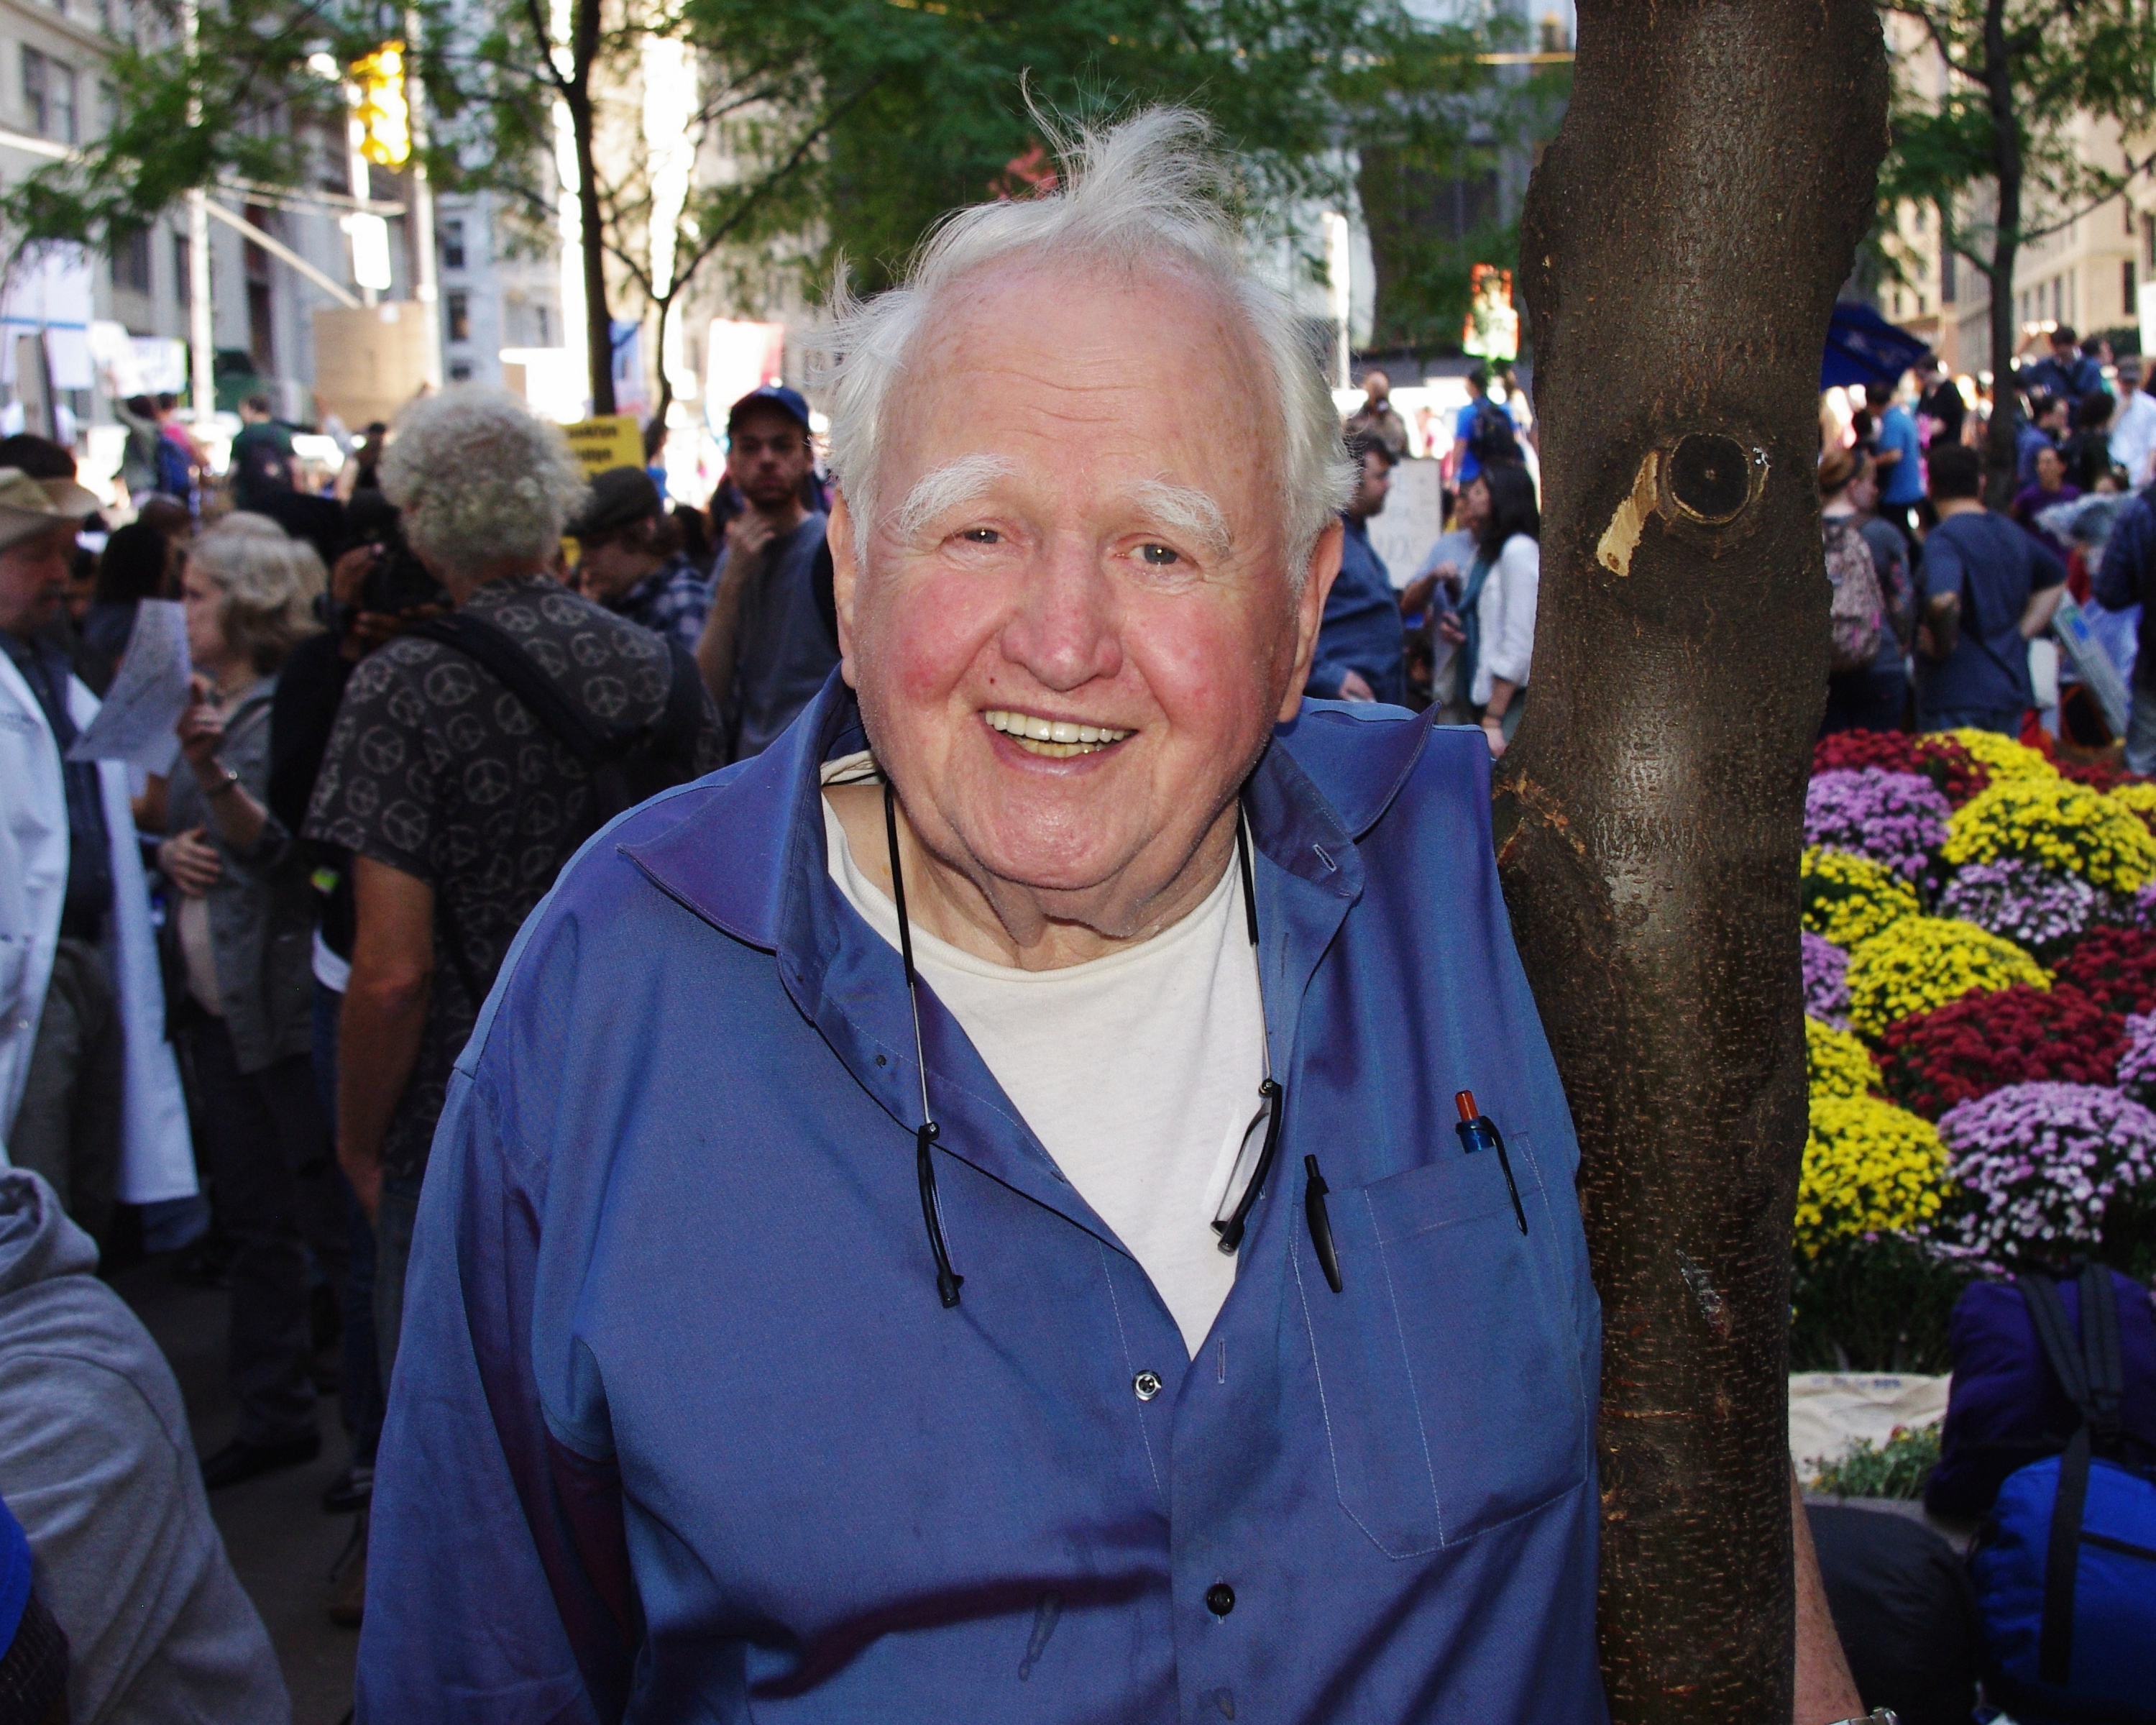 Malachy_McCourt_Occupy_Wall_Street_2011_David_Shankbone_37